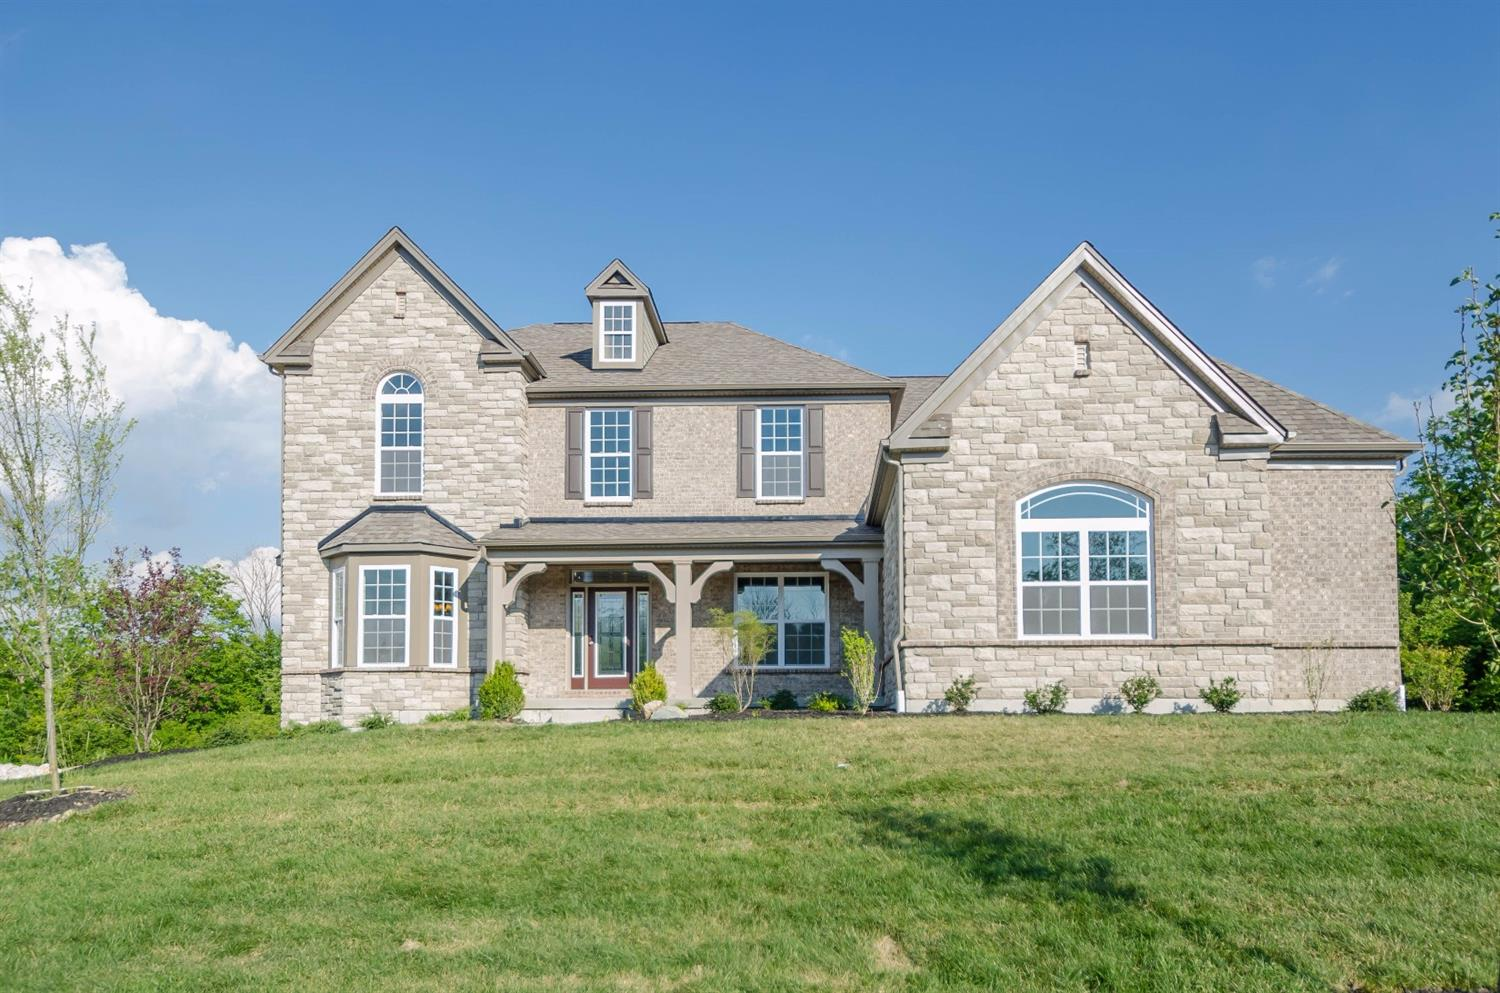 6411 Stagecoach Way 323, Liberty Twp, OH 45011